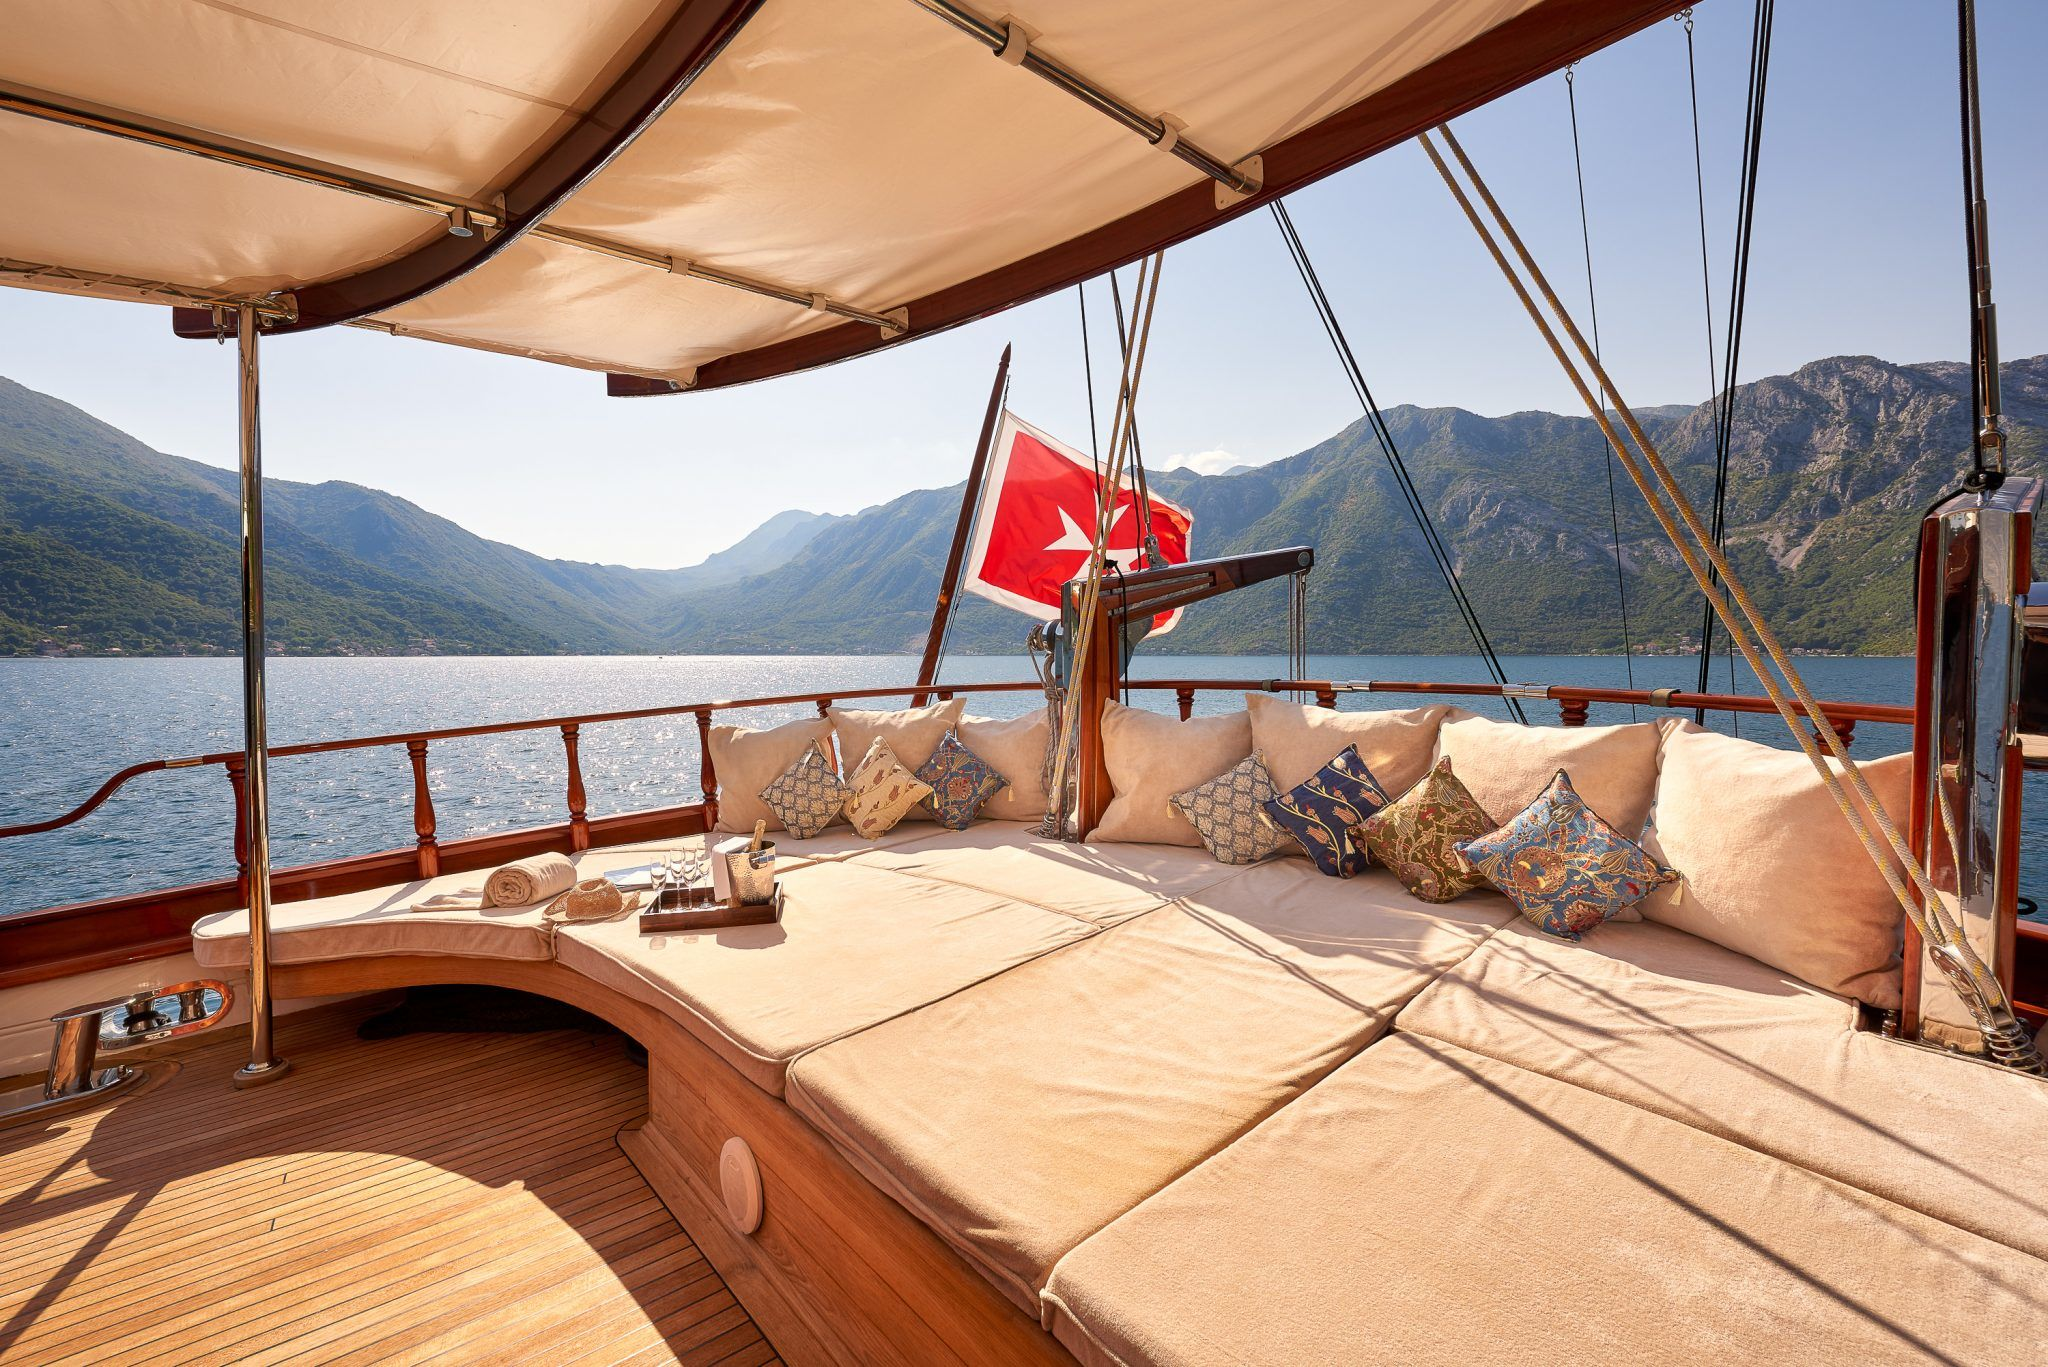 S/Y RIANA Yacht for Charter deck lounging